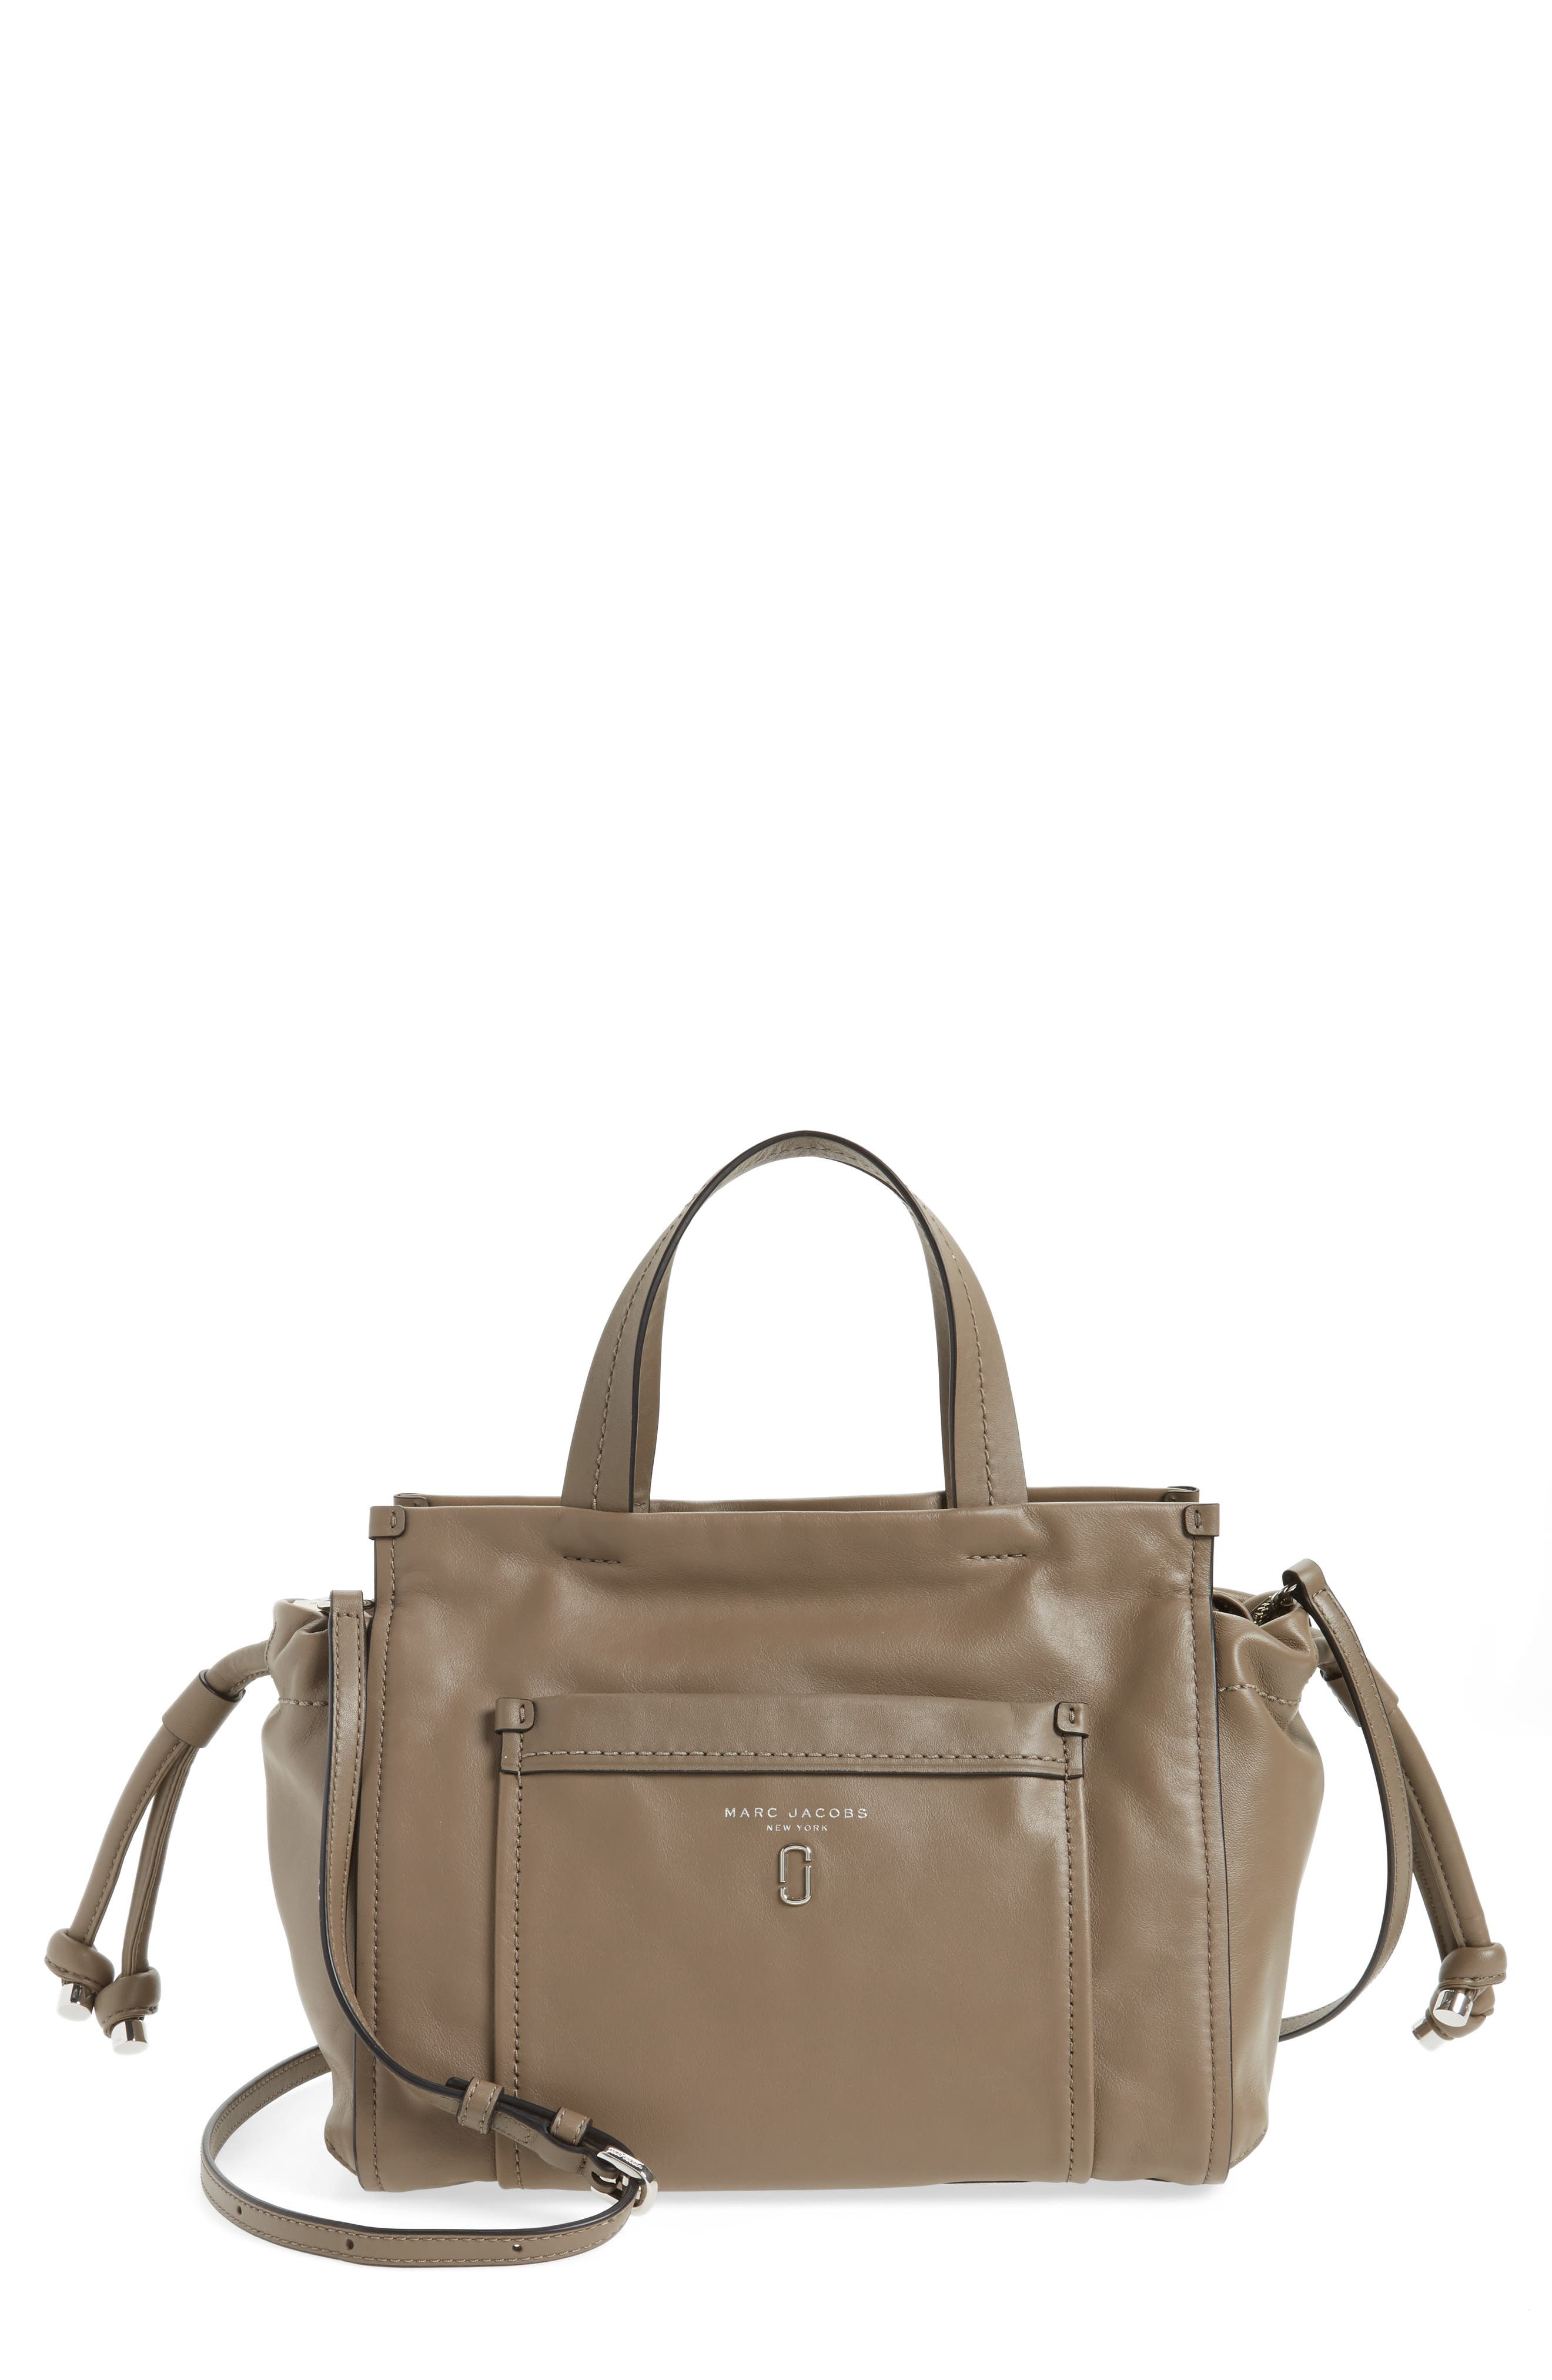 Alternate Image 1 Selected - MARC JACOBS Tied Up Leather Shoulder/Crossbody Tote